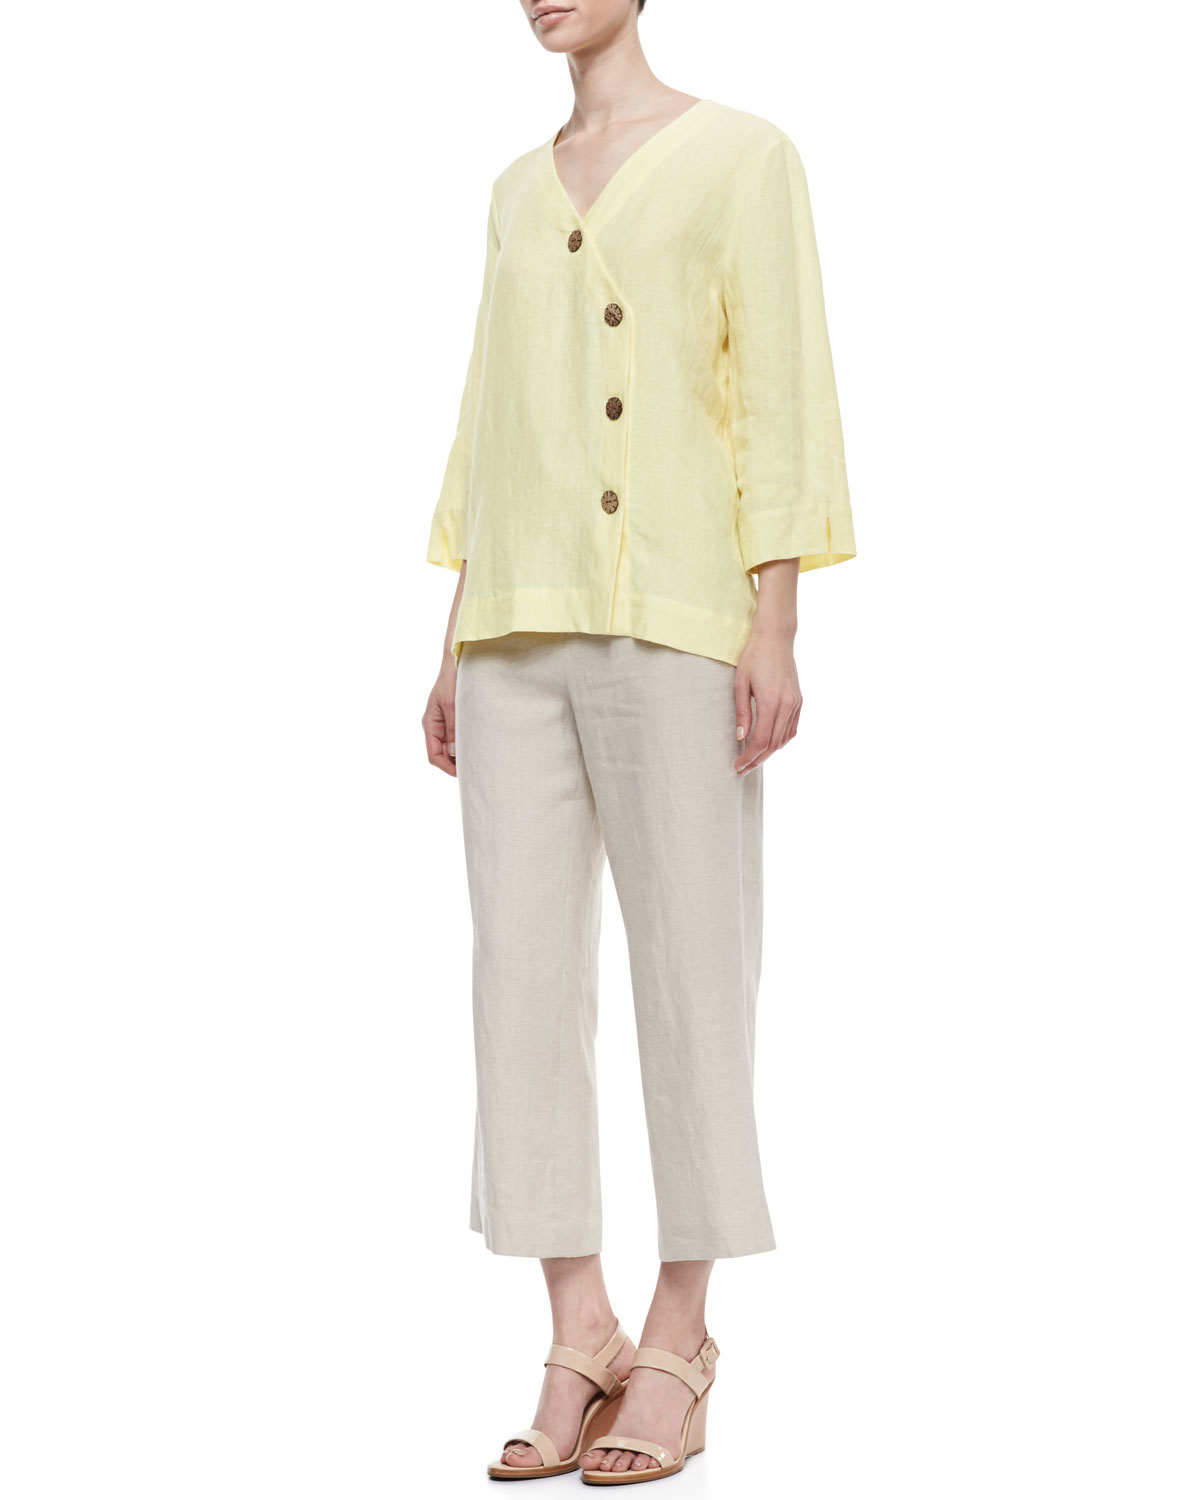 Neiman marcus Casual Linen Ankle Pants in Natural | Lyst